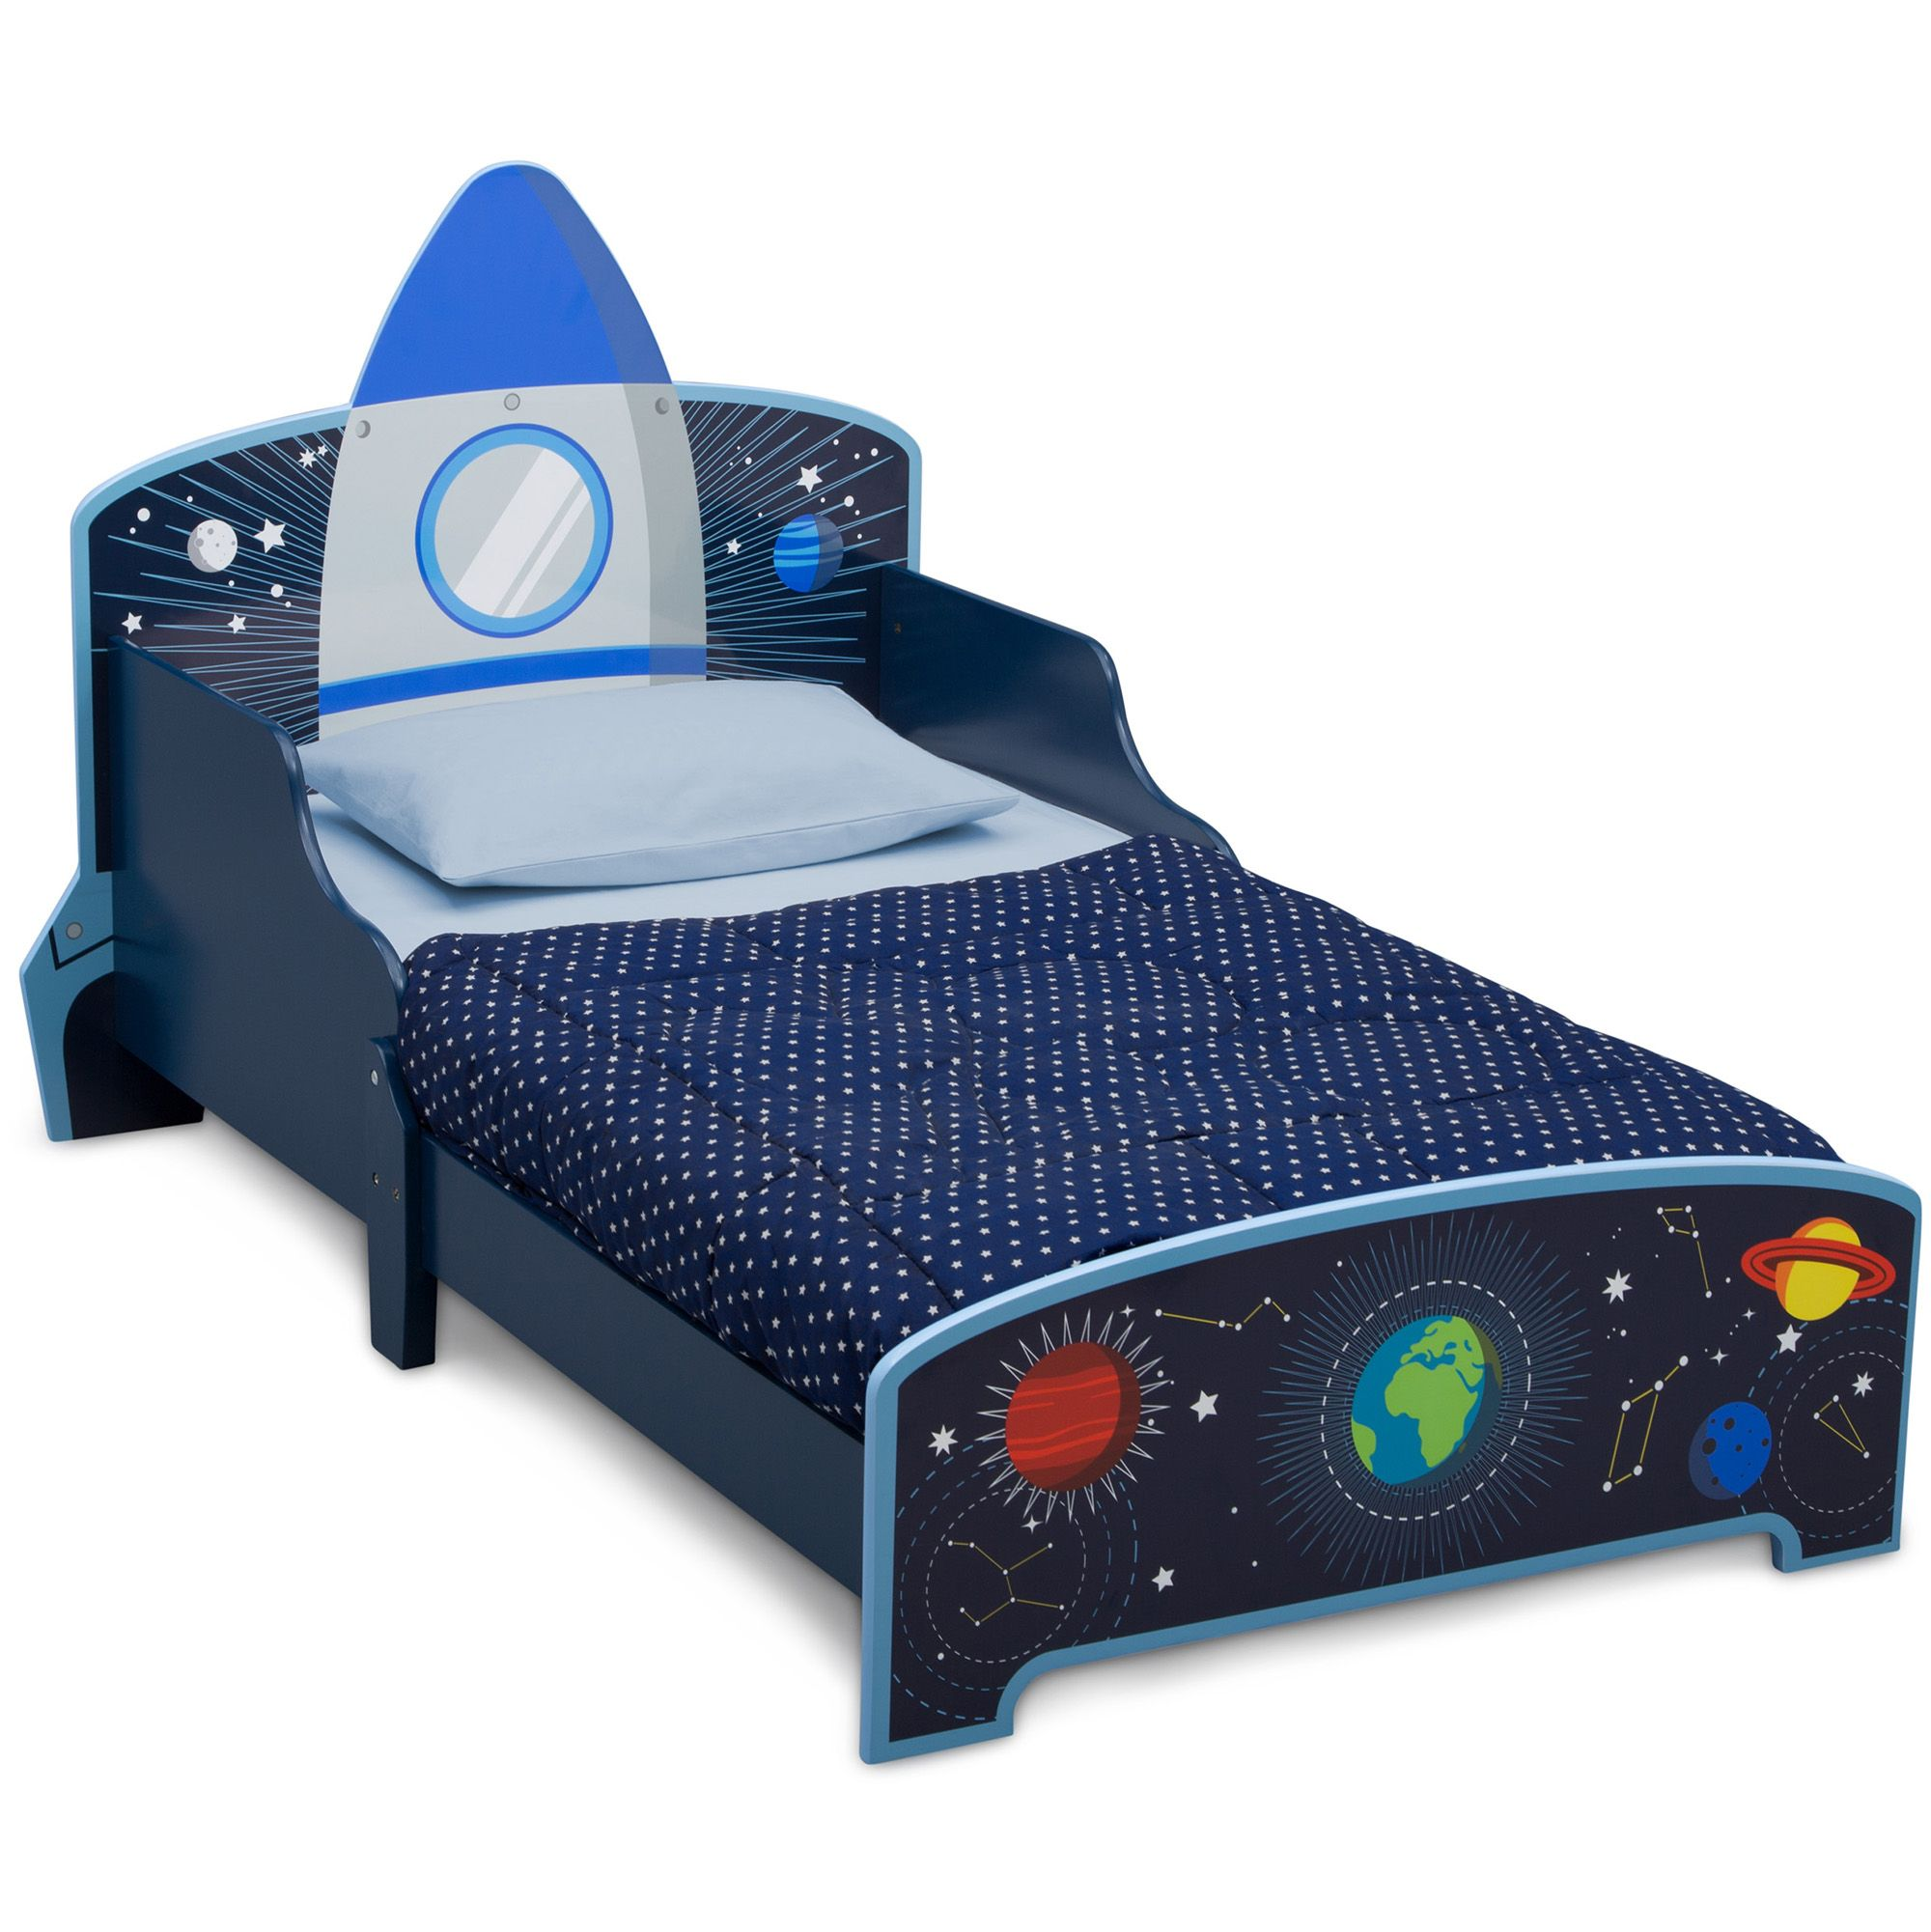 Baby In 2020 With Images Toddler Bed Toddler Bed Boy Kid Beds